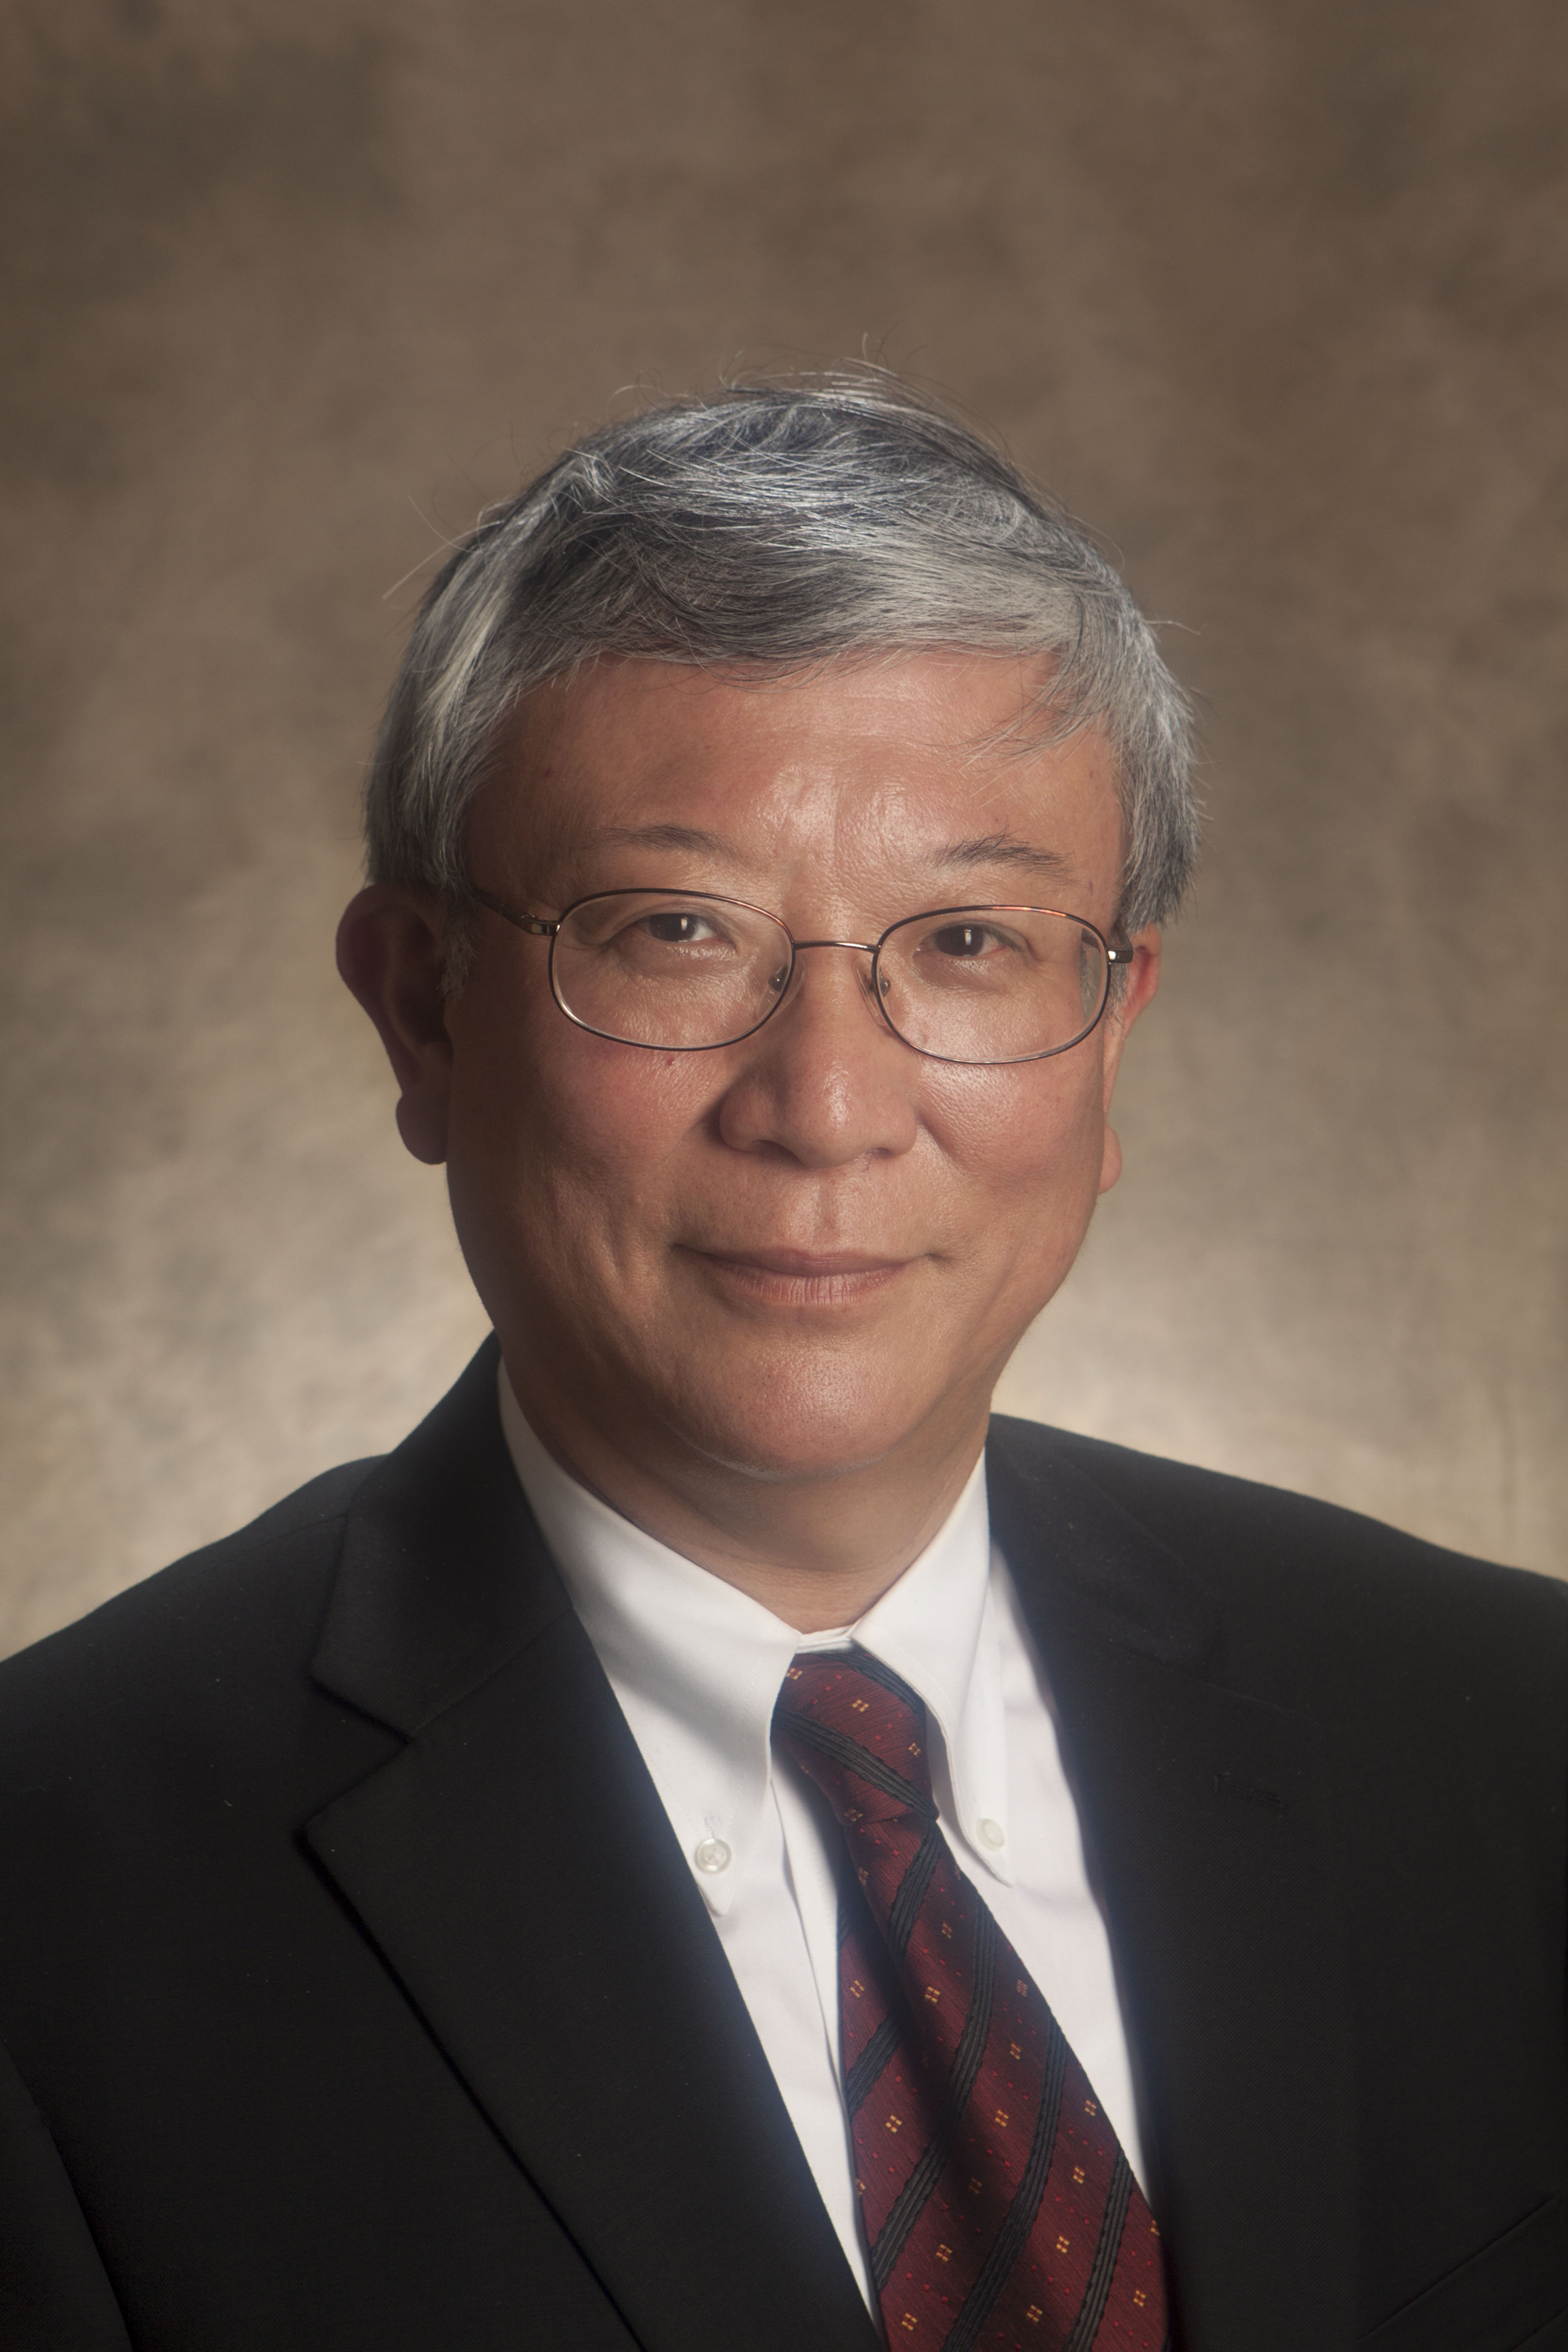 Dr. Noda has been named CSO and will also retain his role as Senior Vice President of Innovation {Photo: Business Wire)